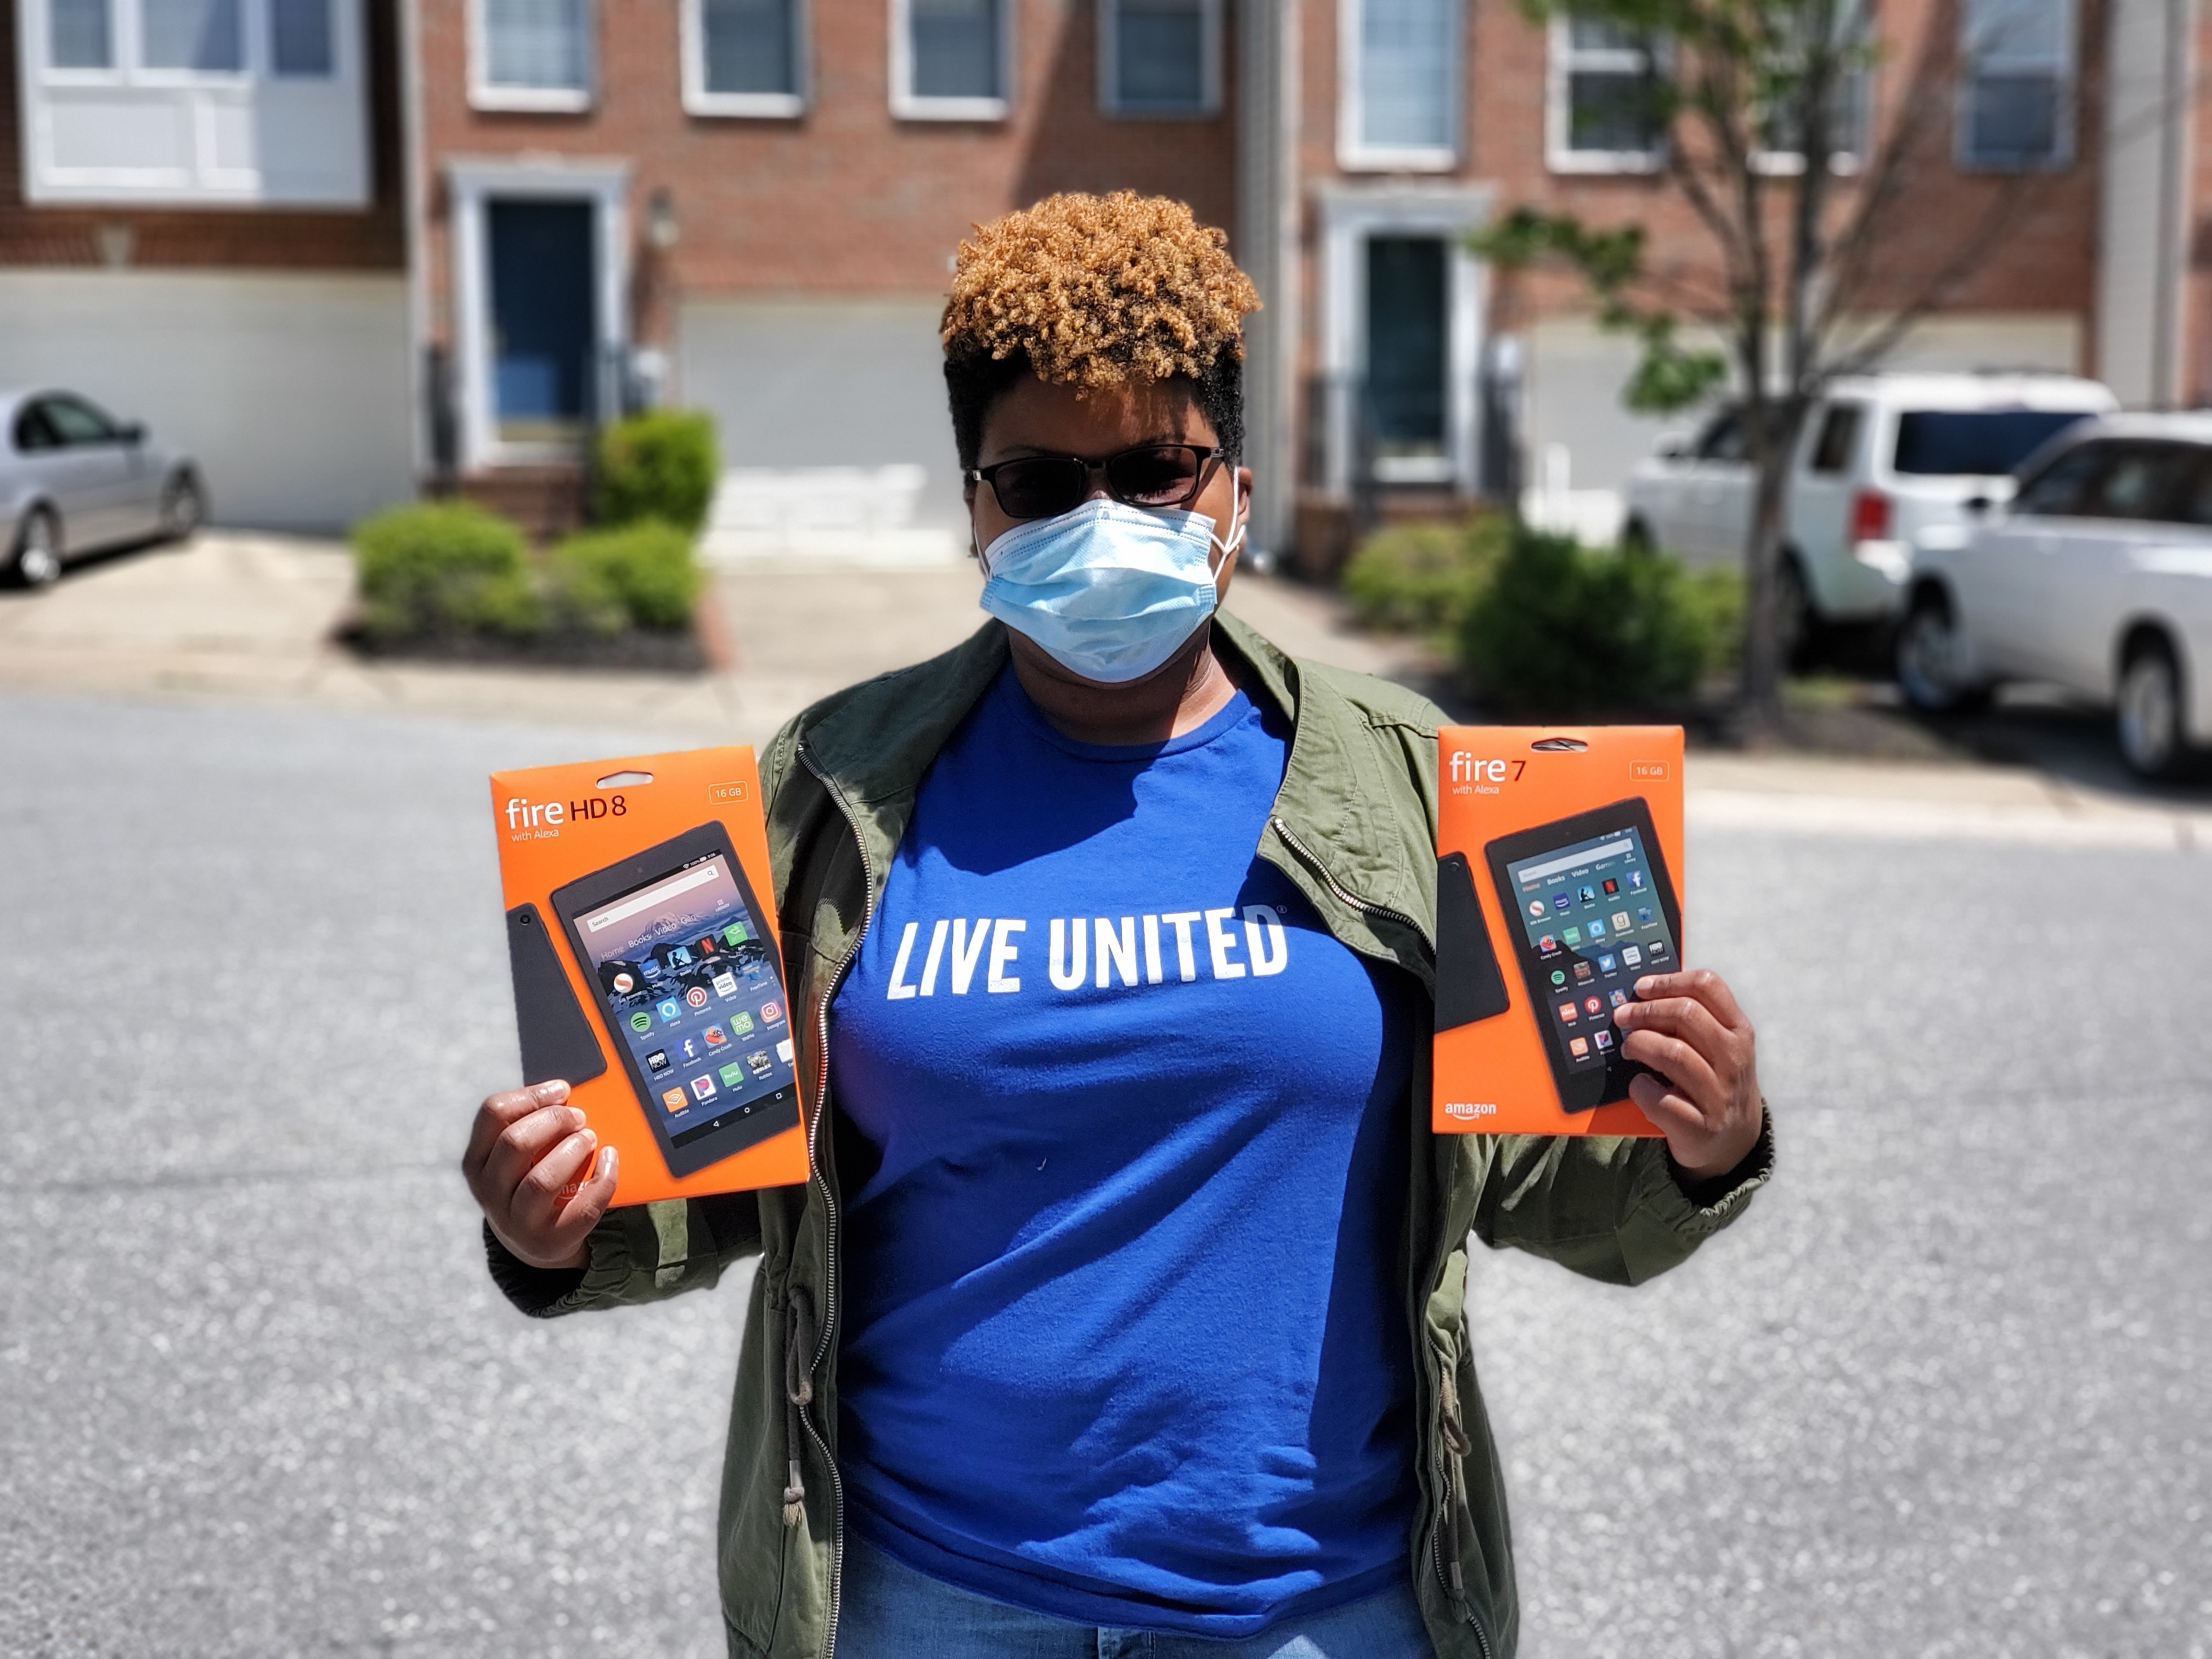 Tablet Distribution Photo: UWCM staff member in blue Live United shirt holding two donated tablets for distribution during delivery event